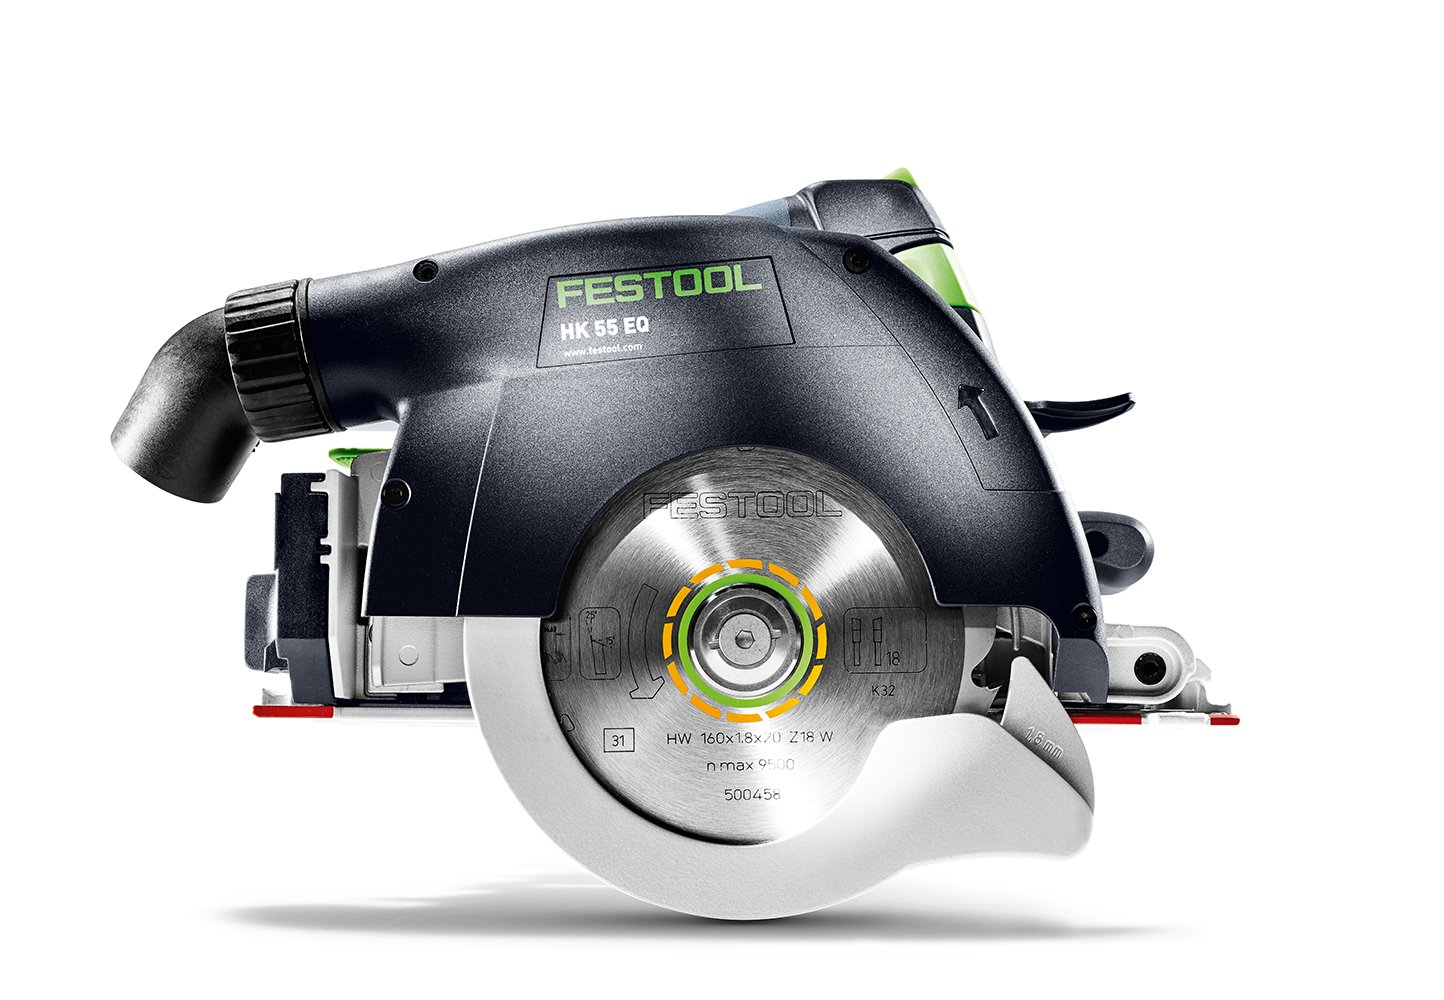 Festool 561756 HK 55 EQ – Carpentry Saw